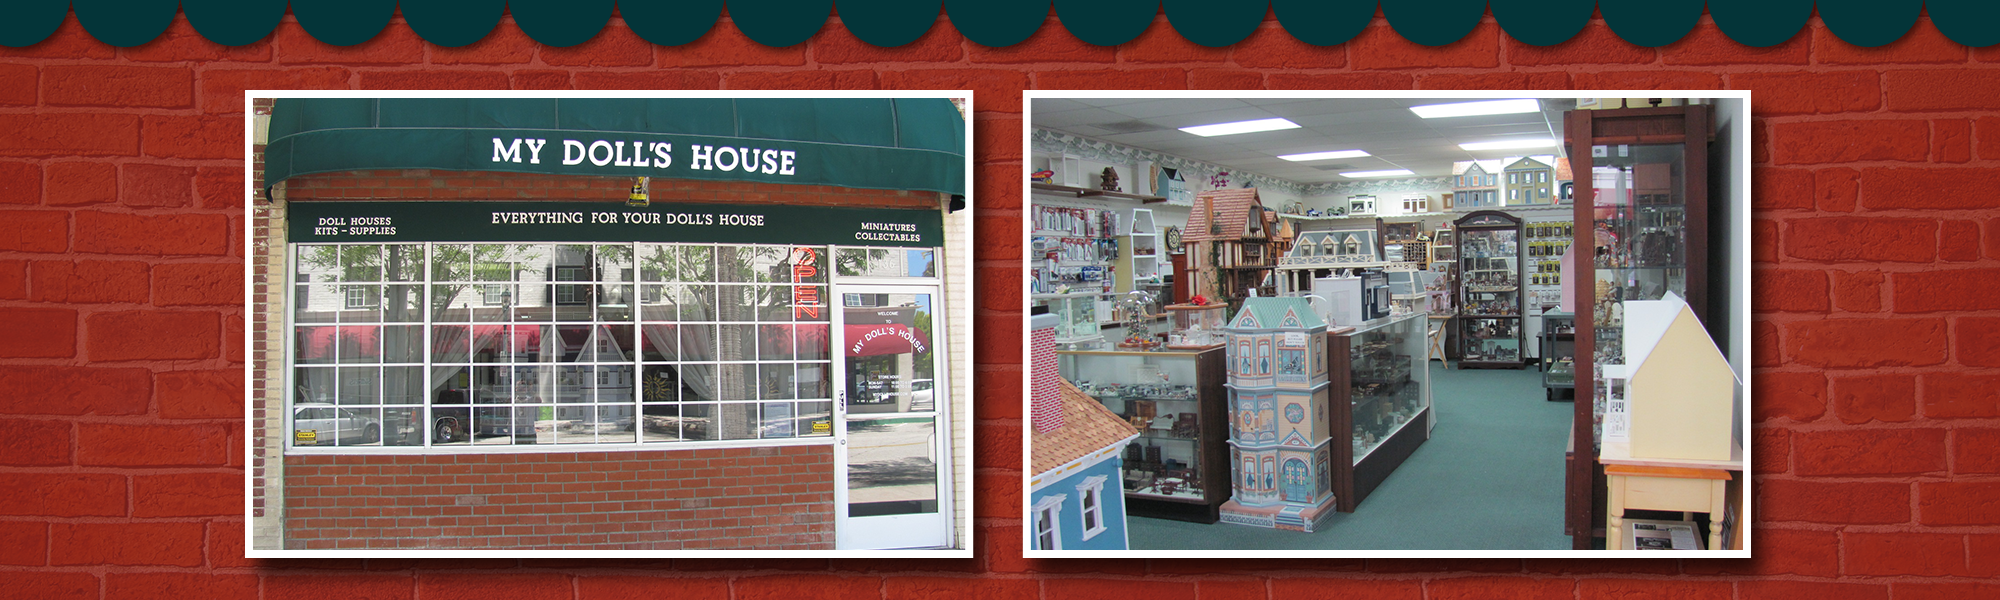 Dollhouse Miniature Store | Los Angeles, CA - My Doll's House